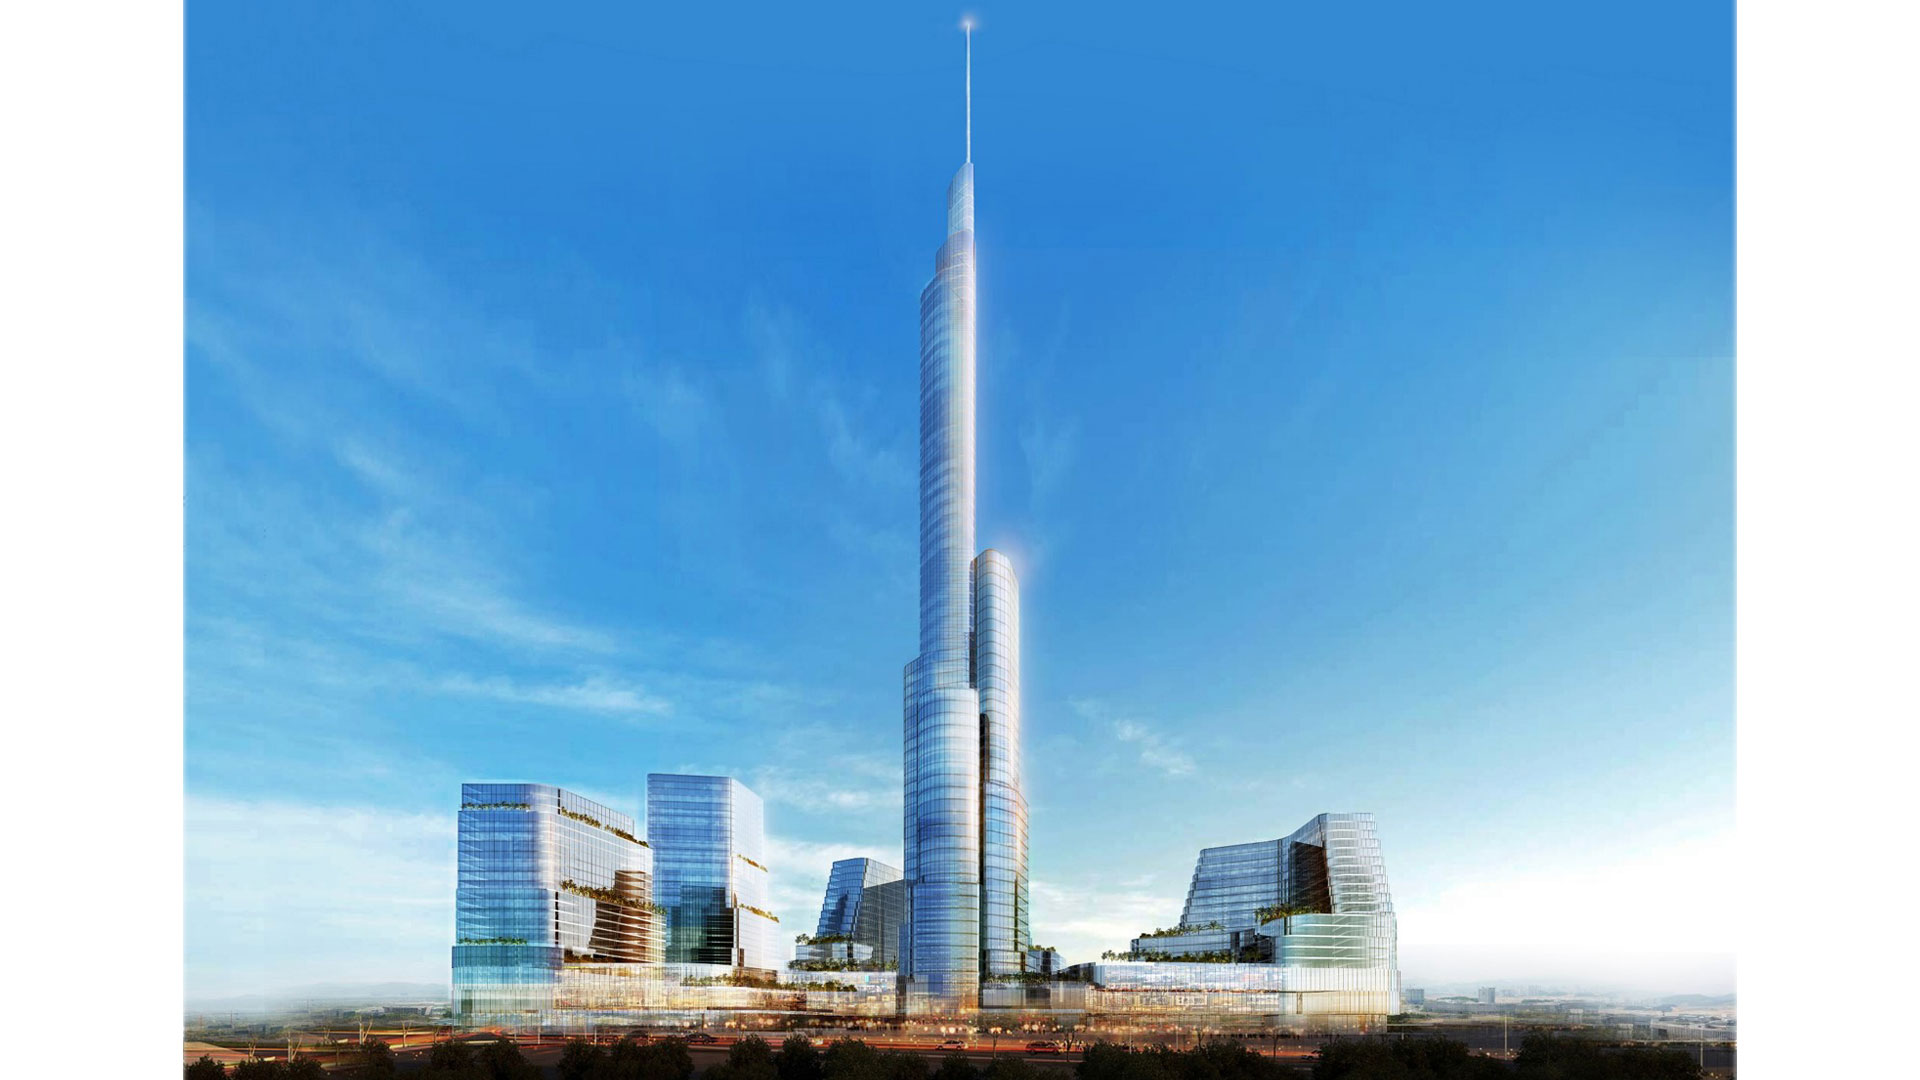 ASYA-Design-Projects_Proposed-Master-Development-1920